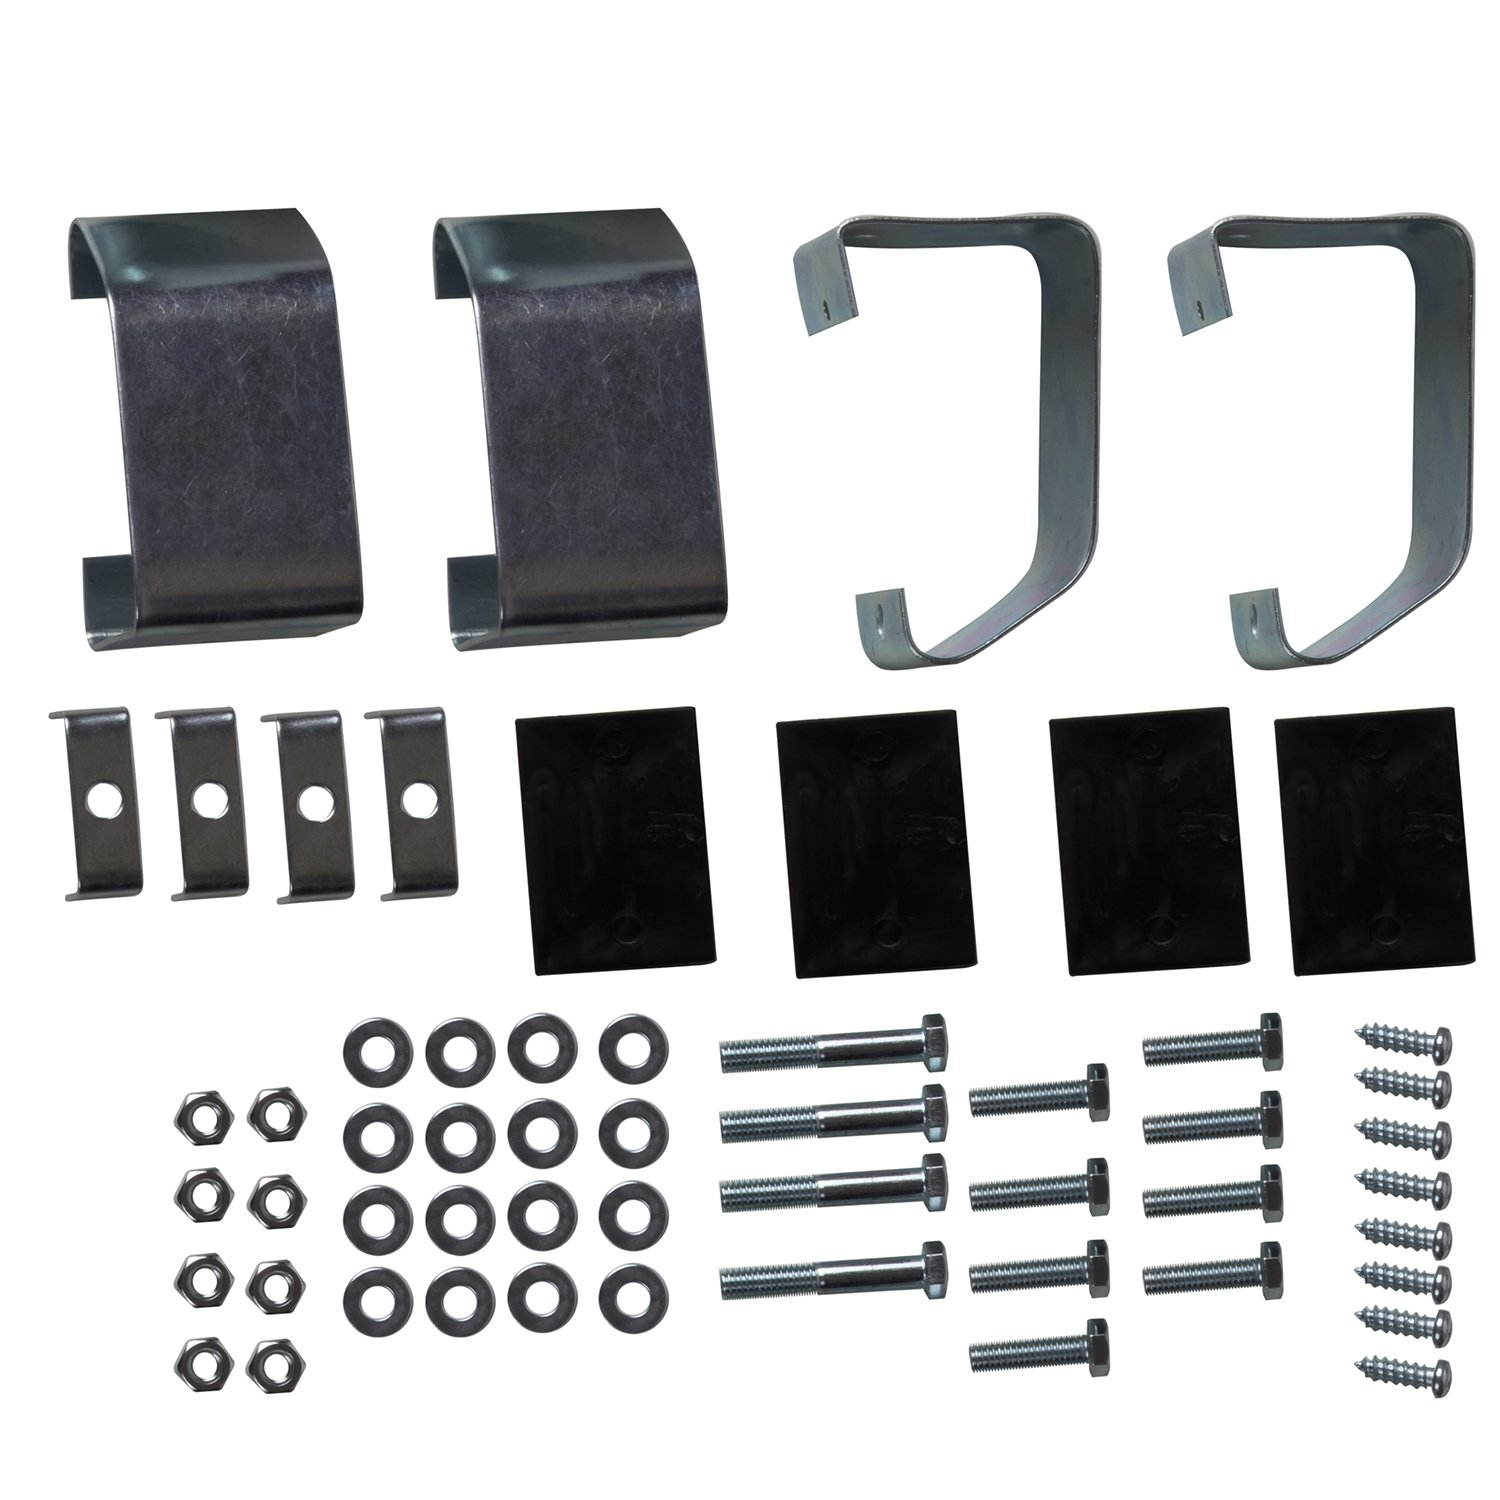 OxGord Aluminum Side Step Set Nerf Bar Best for 2002-2006 Chevrolet Avalanche 1500 for Assistance in Entering & Exiting – Max Capacity Weight 350 lbs by OxGord (Image #7)